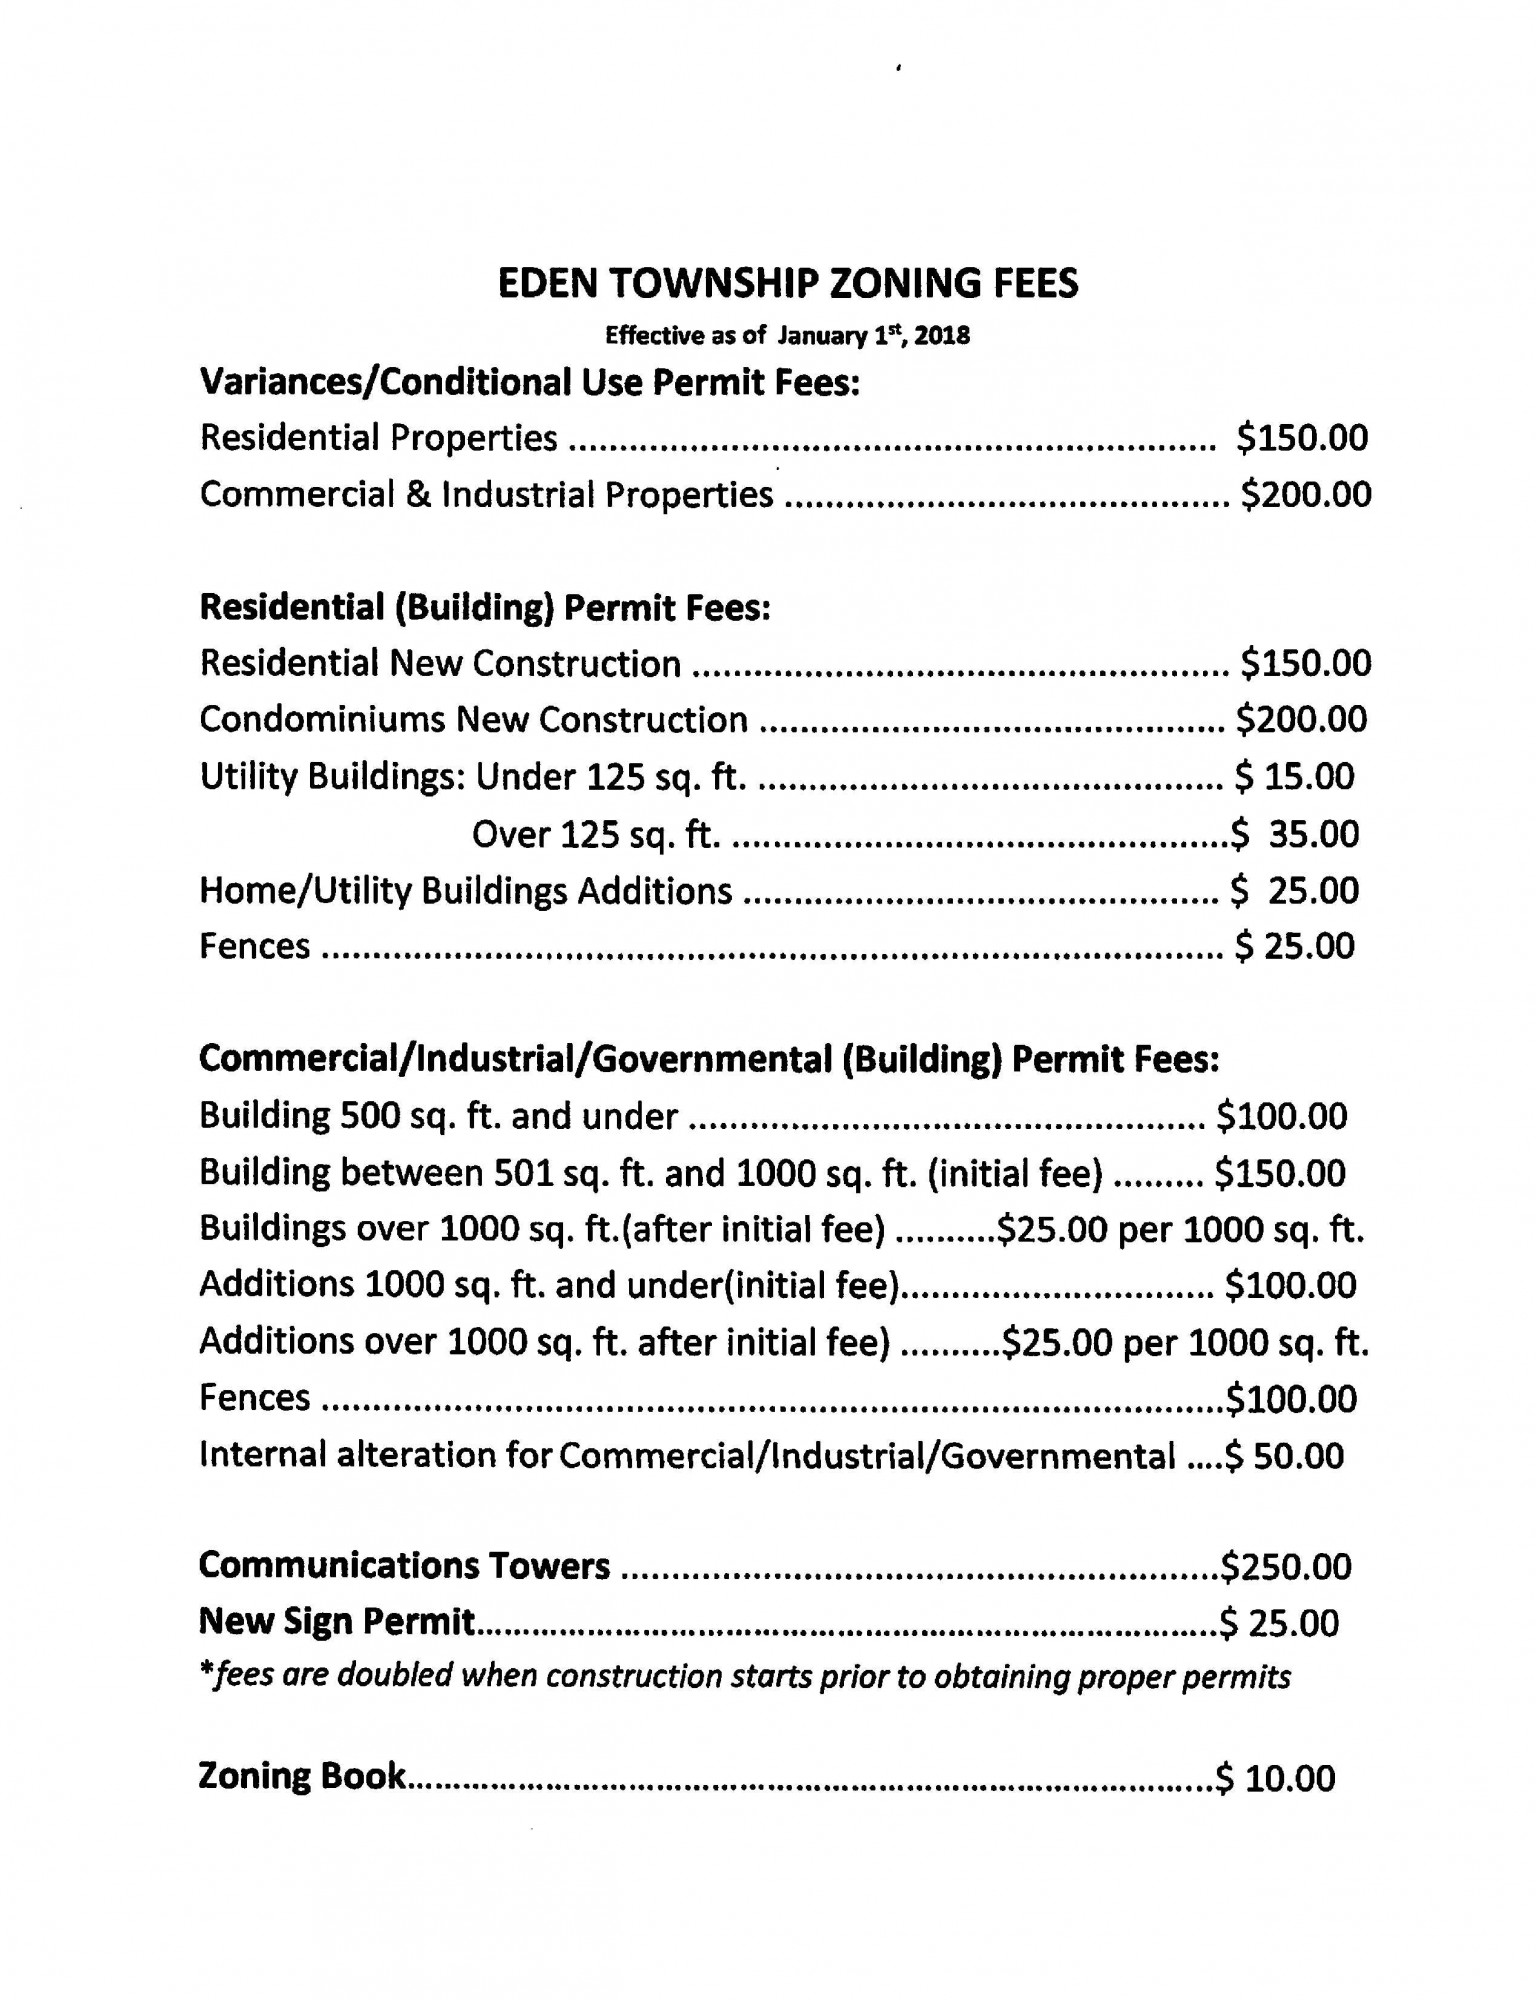 Eden Township Zoning Fees as of 01/01/2018